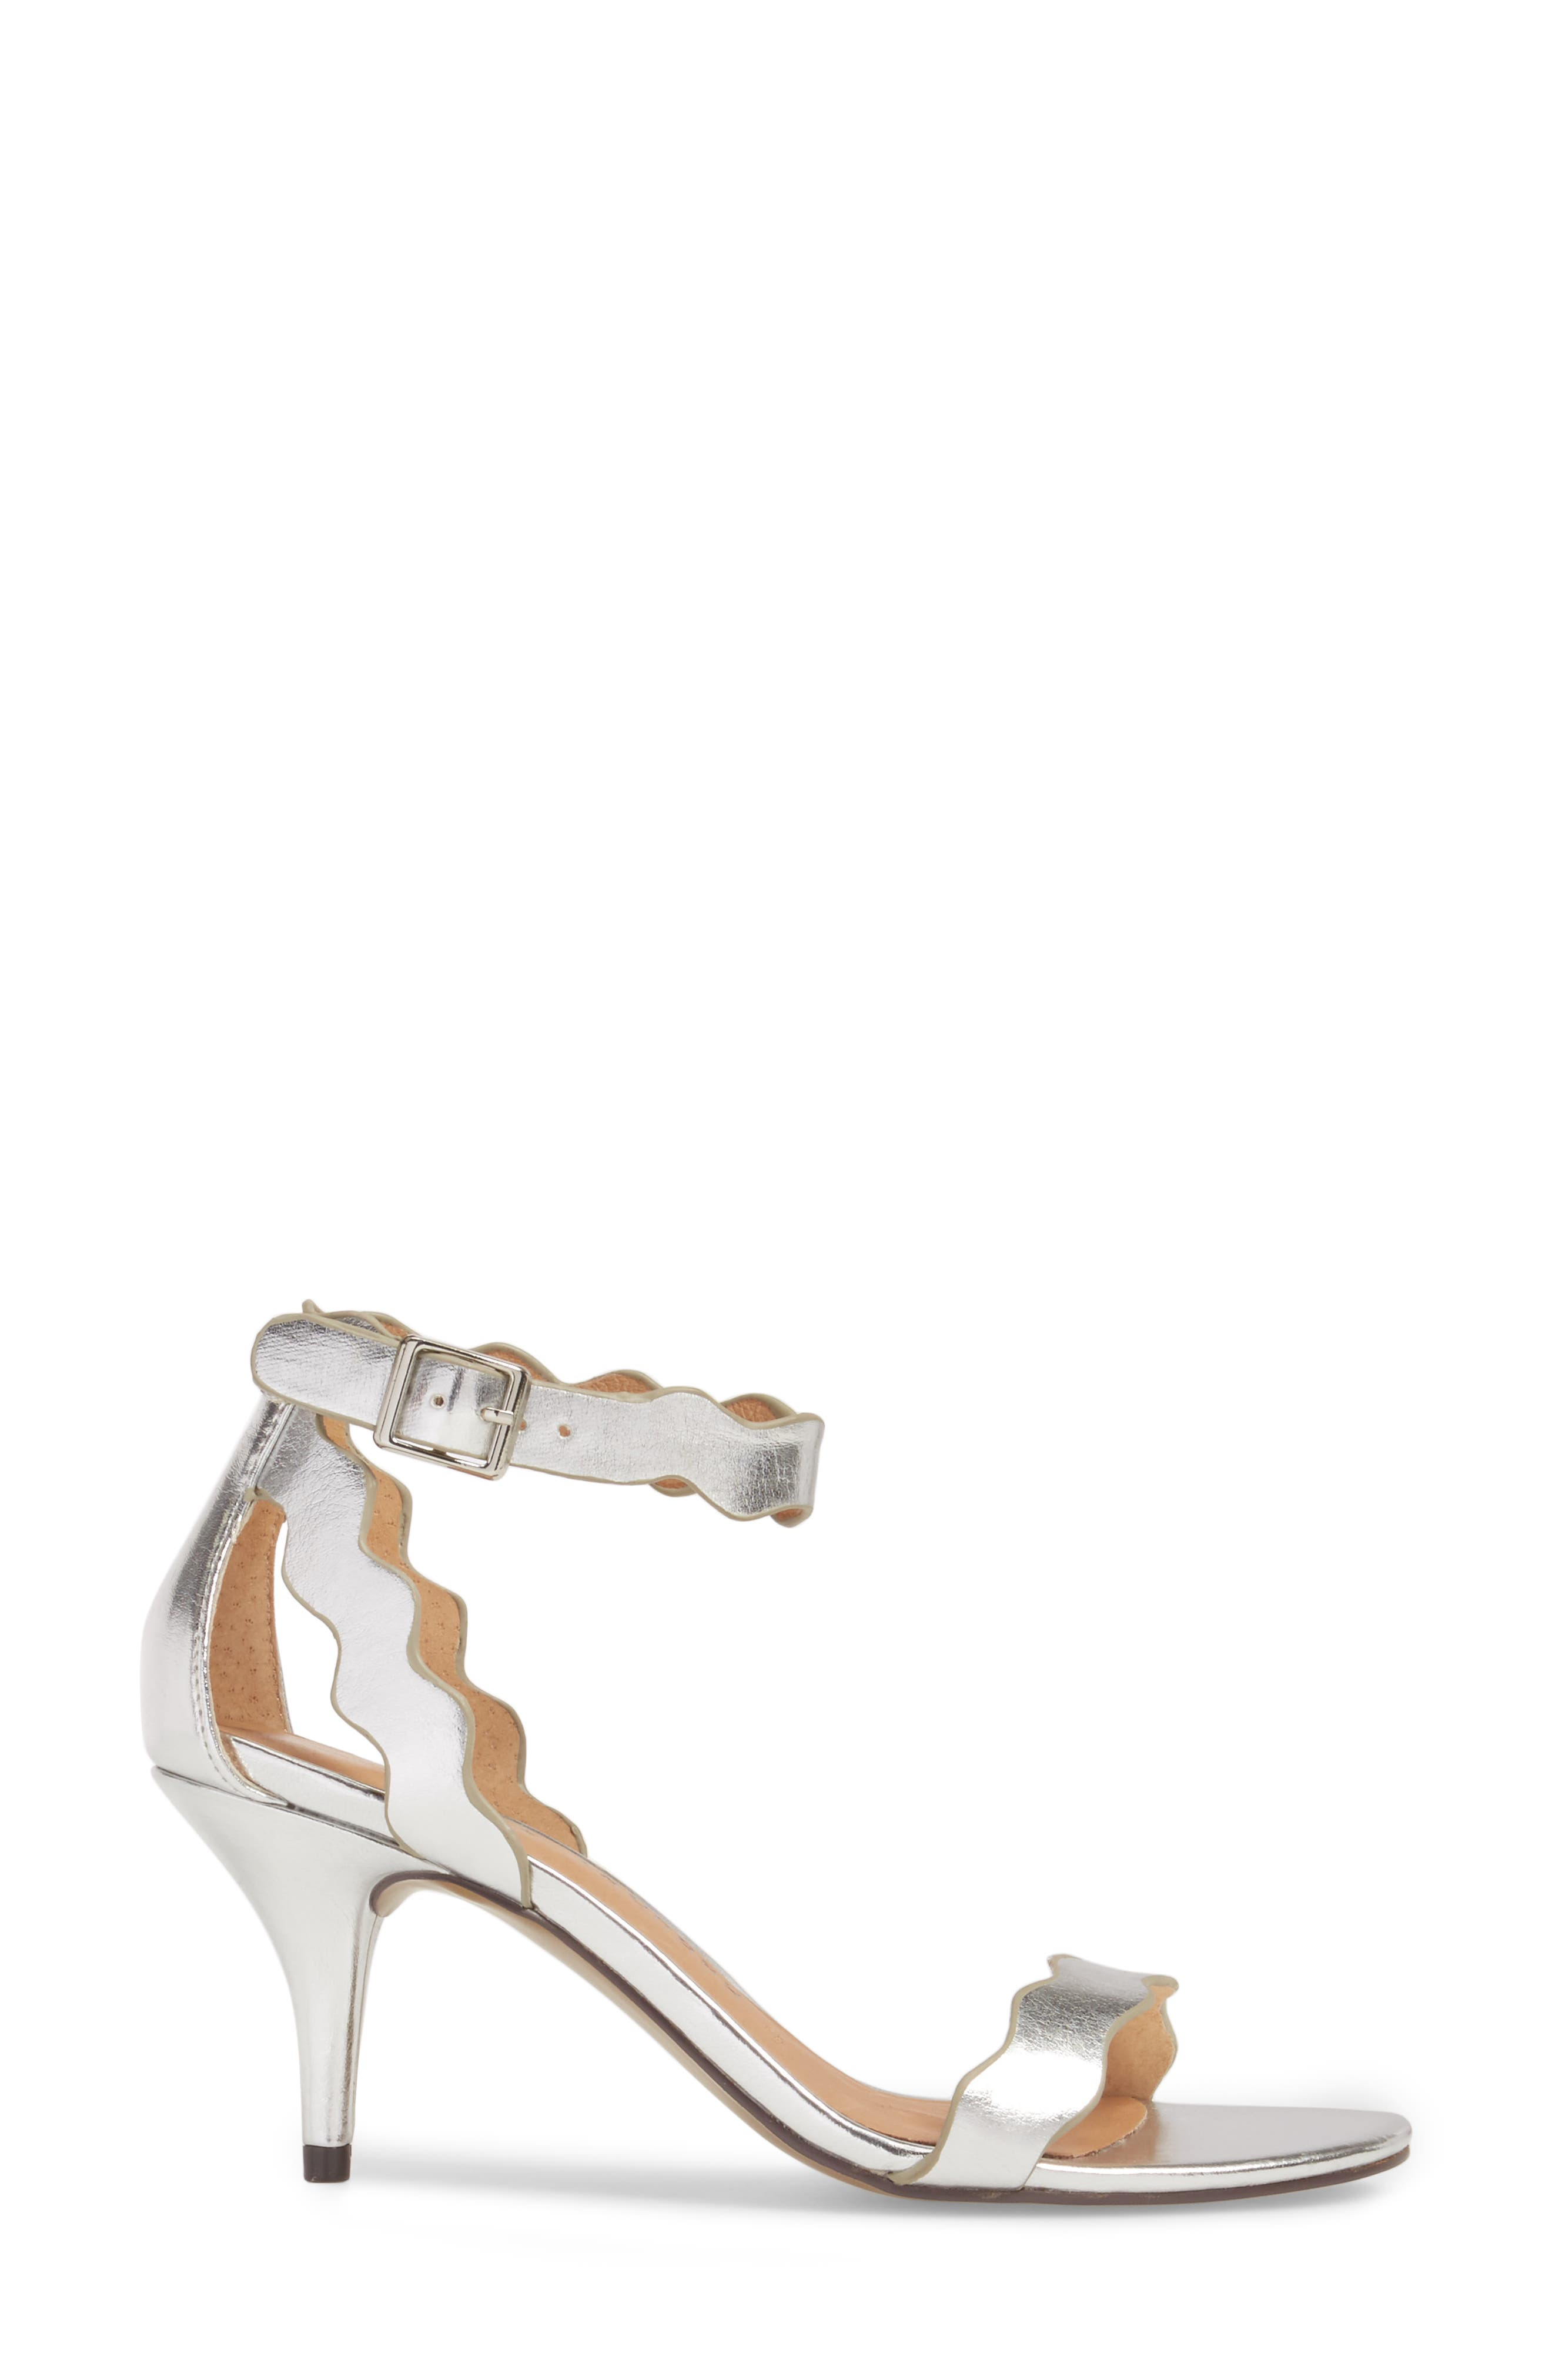 Alternate Image 3  - Chinese Laundry 'Rubie' Scalloped Ankle Strap Sandal (Women)